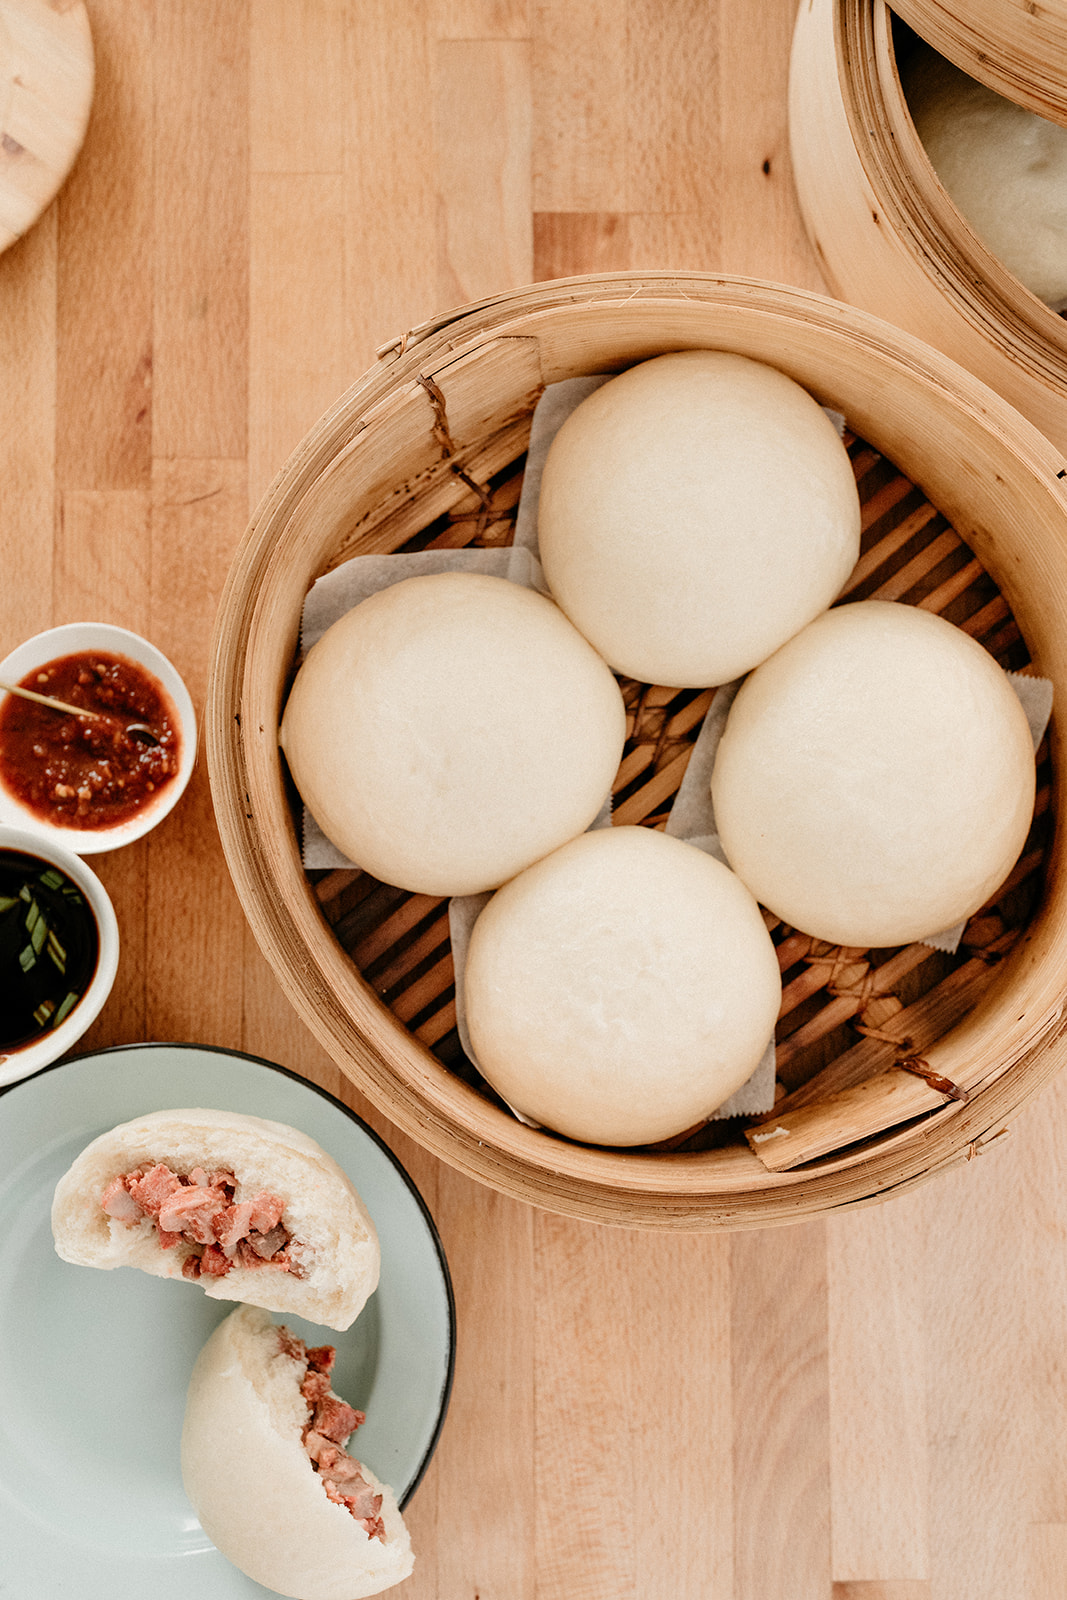 molly-yeh-pork-buns-7.jpg